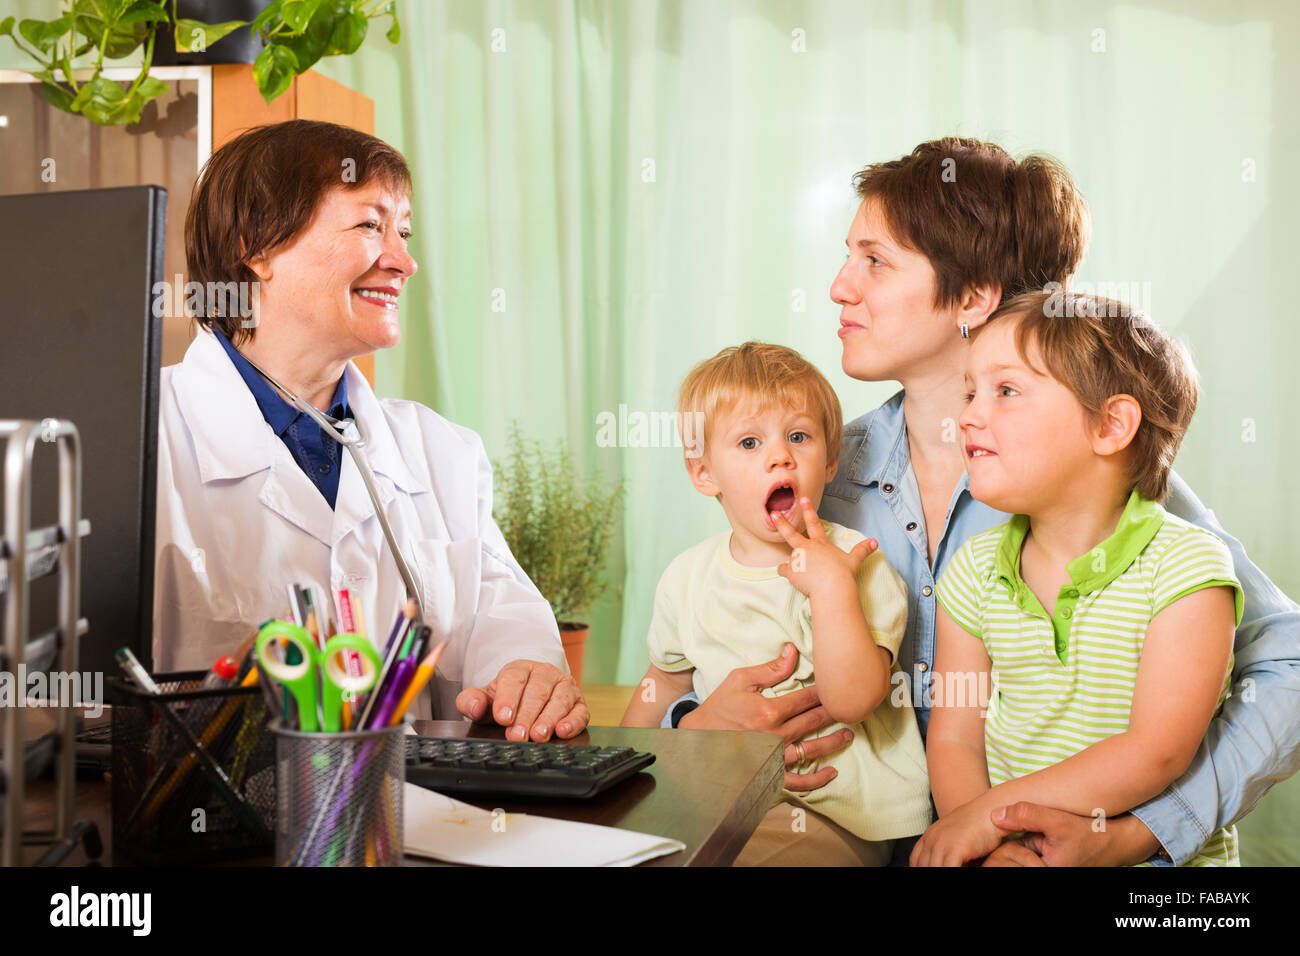 Young  mother of two children  talking with friendly pediatrician doctor at clinic office - Stock Image